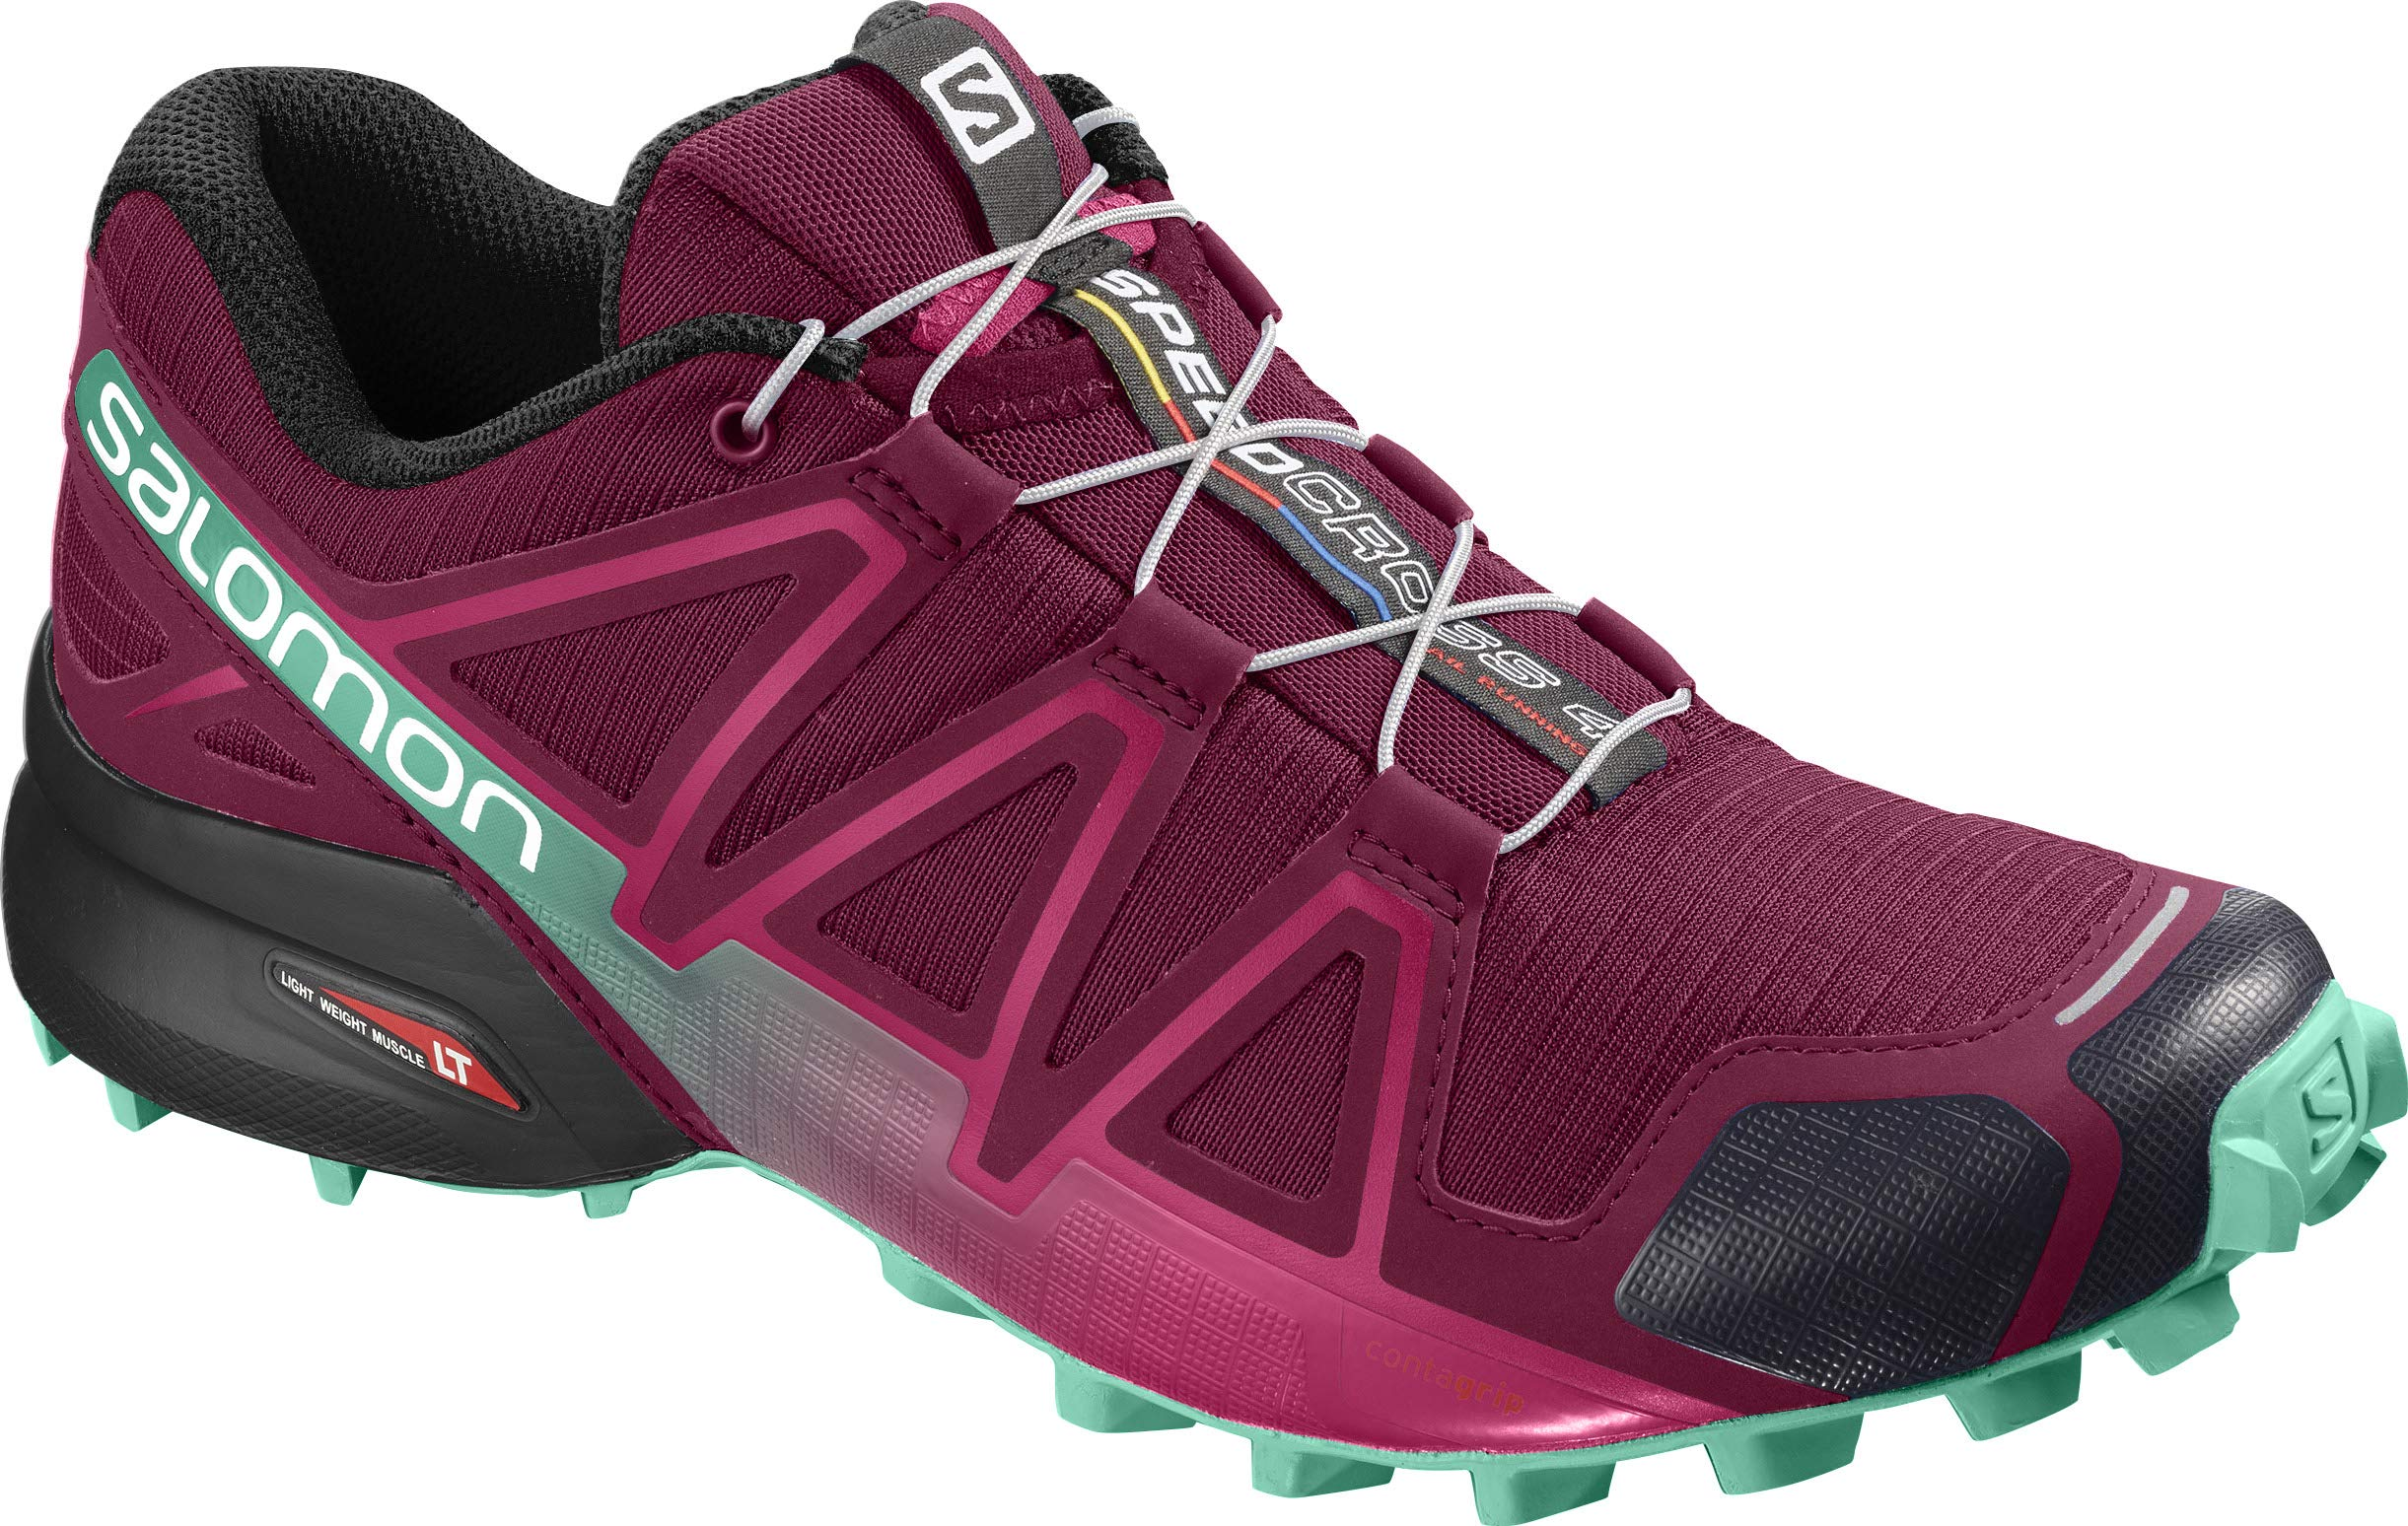 Salomon Womens Speedcross 4 Trail Sneaker product image